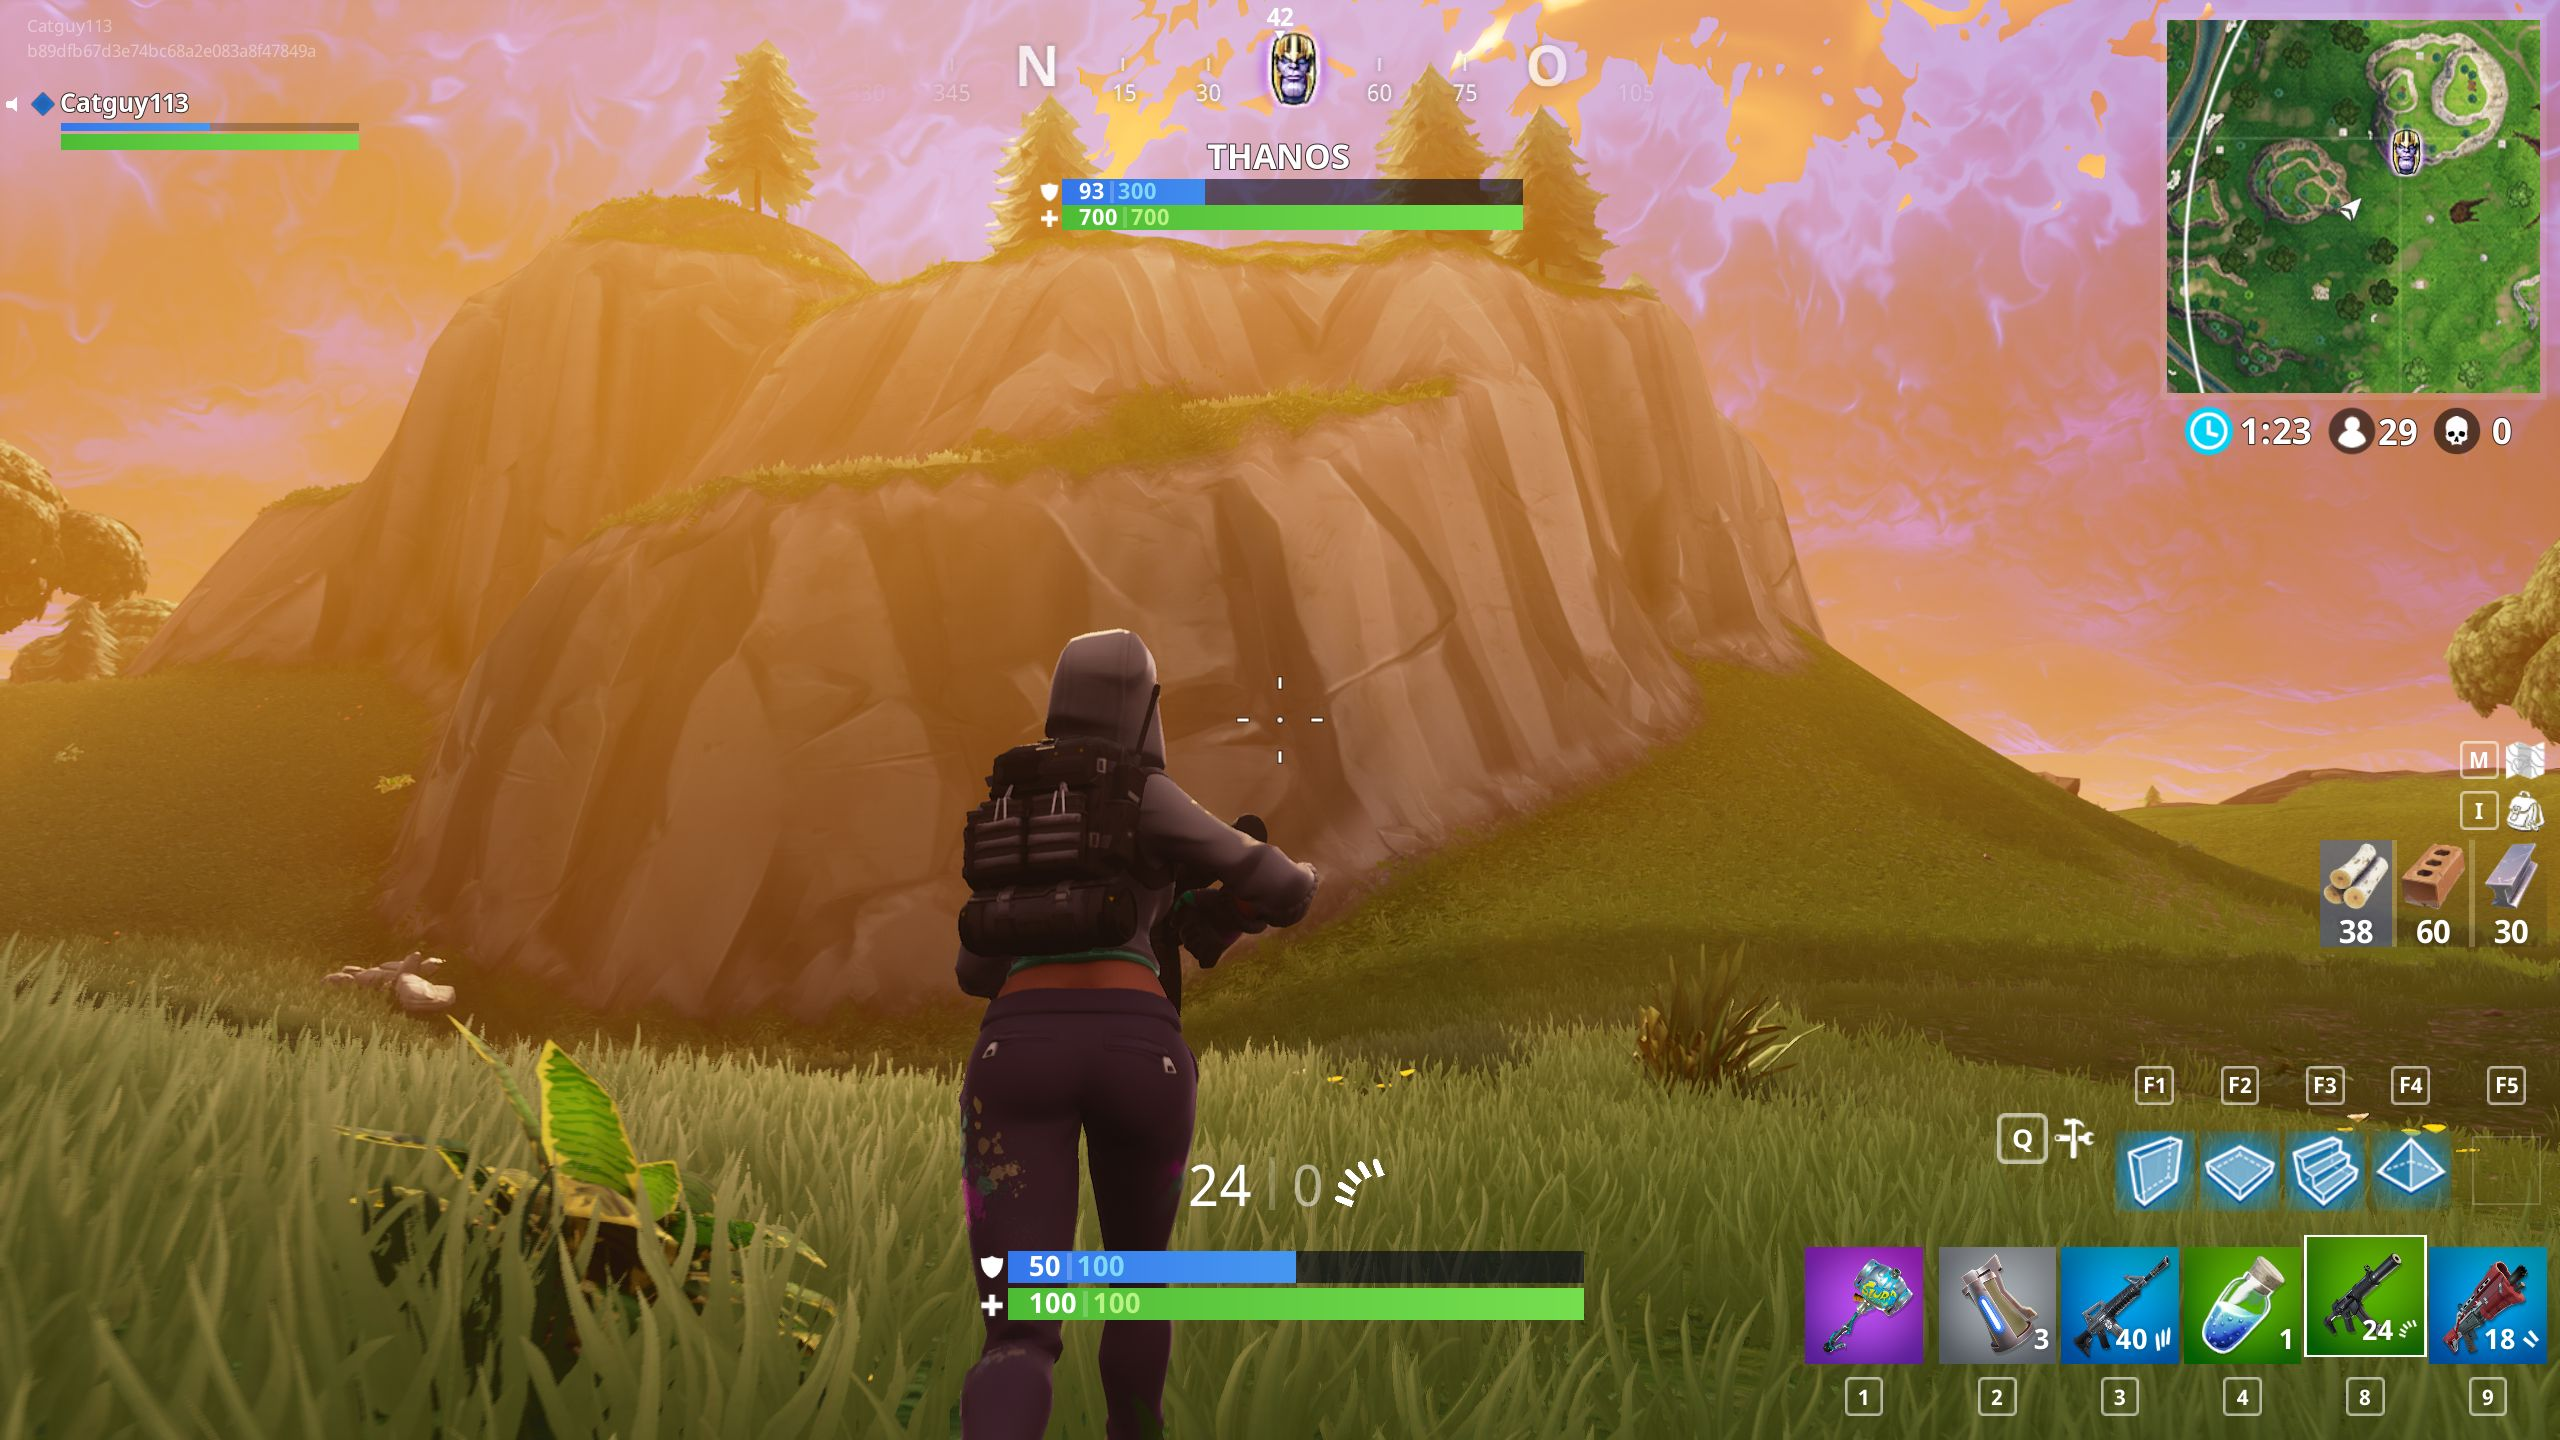 Fortnite-Thanos-Screens-1-08